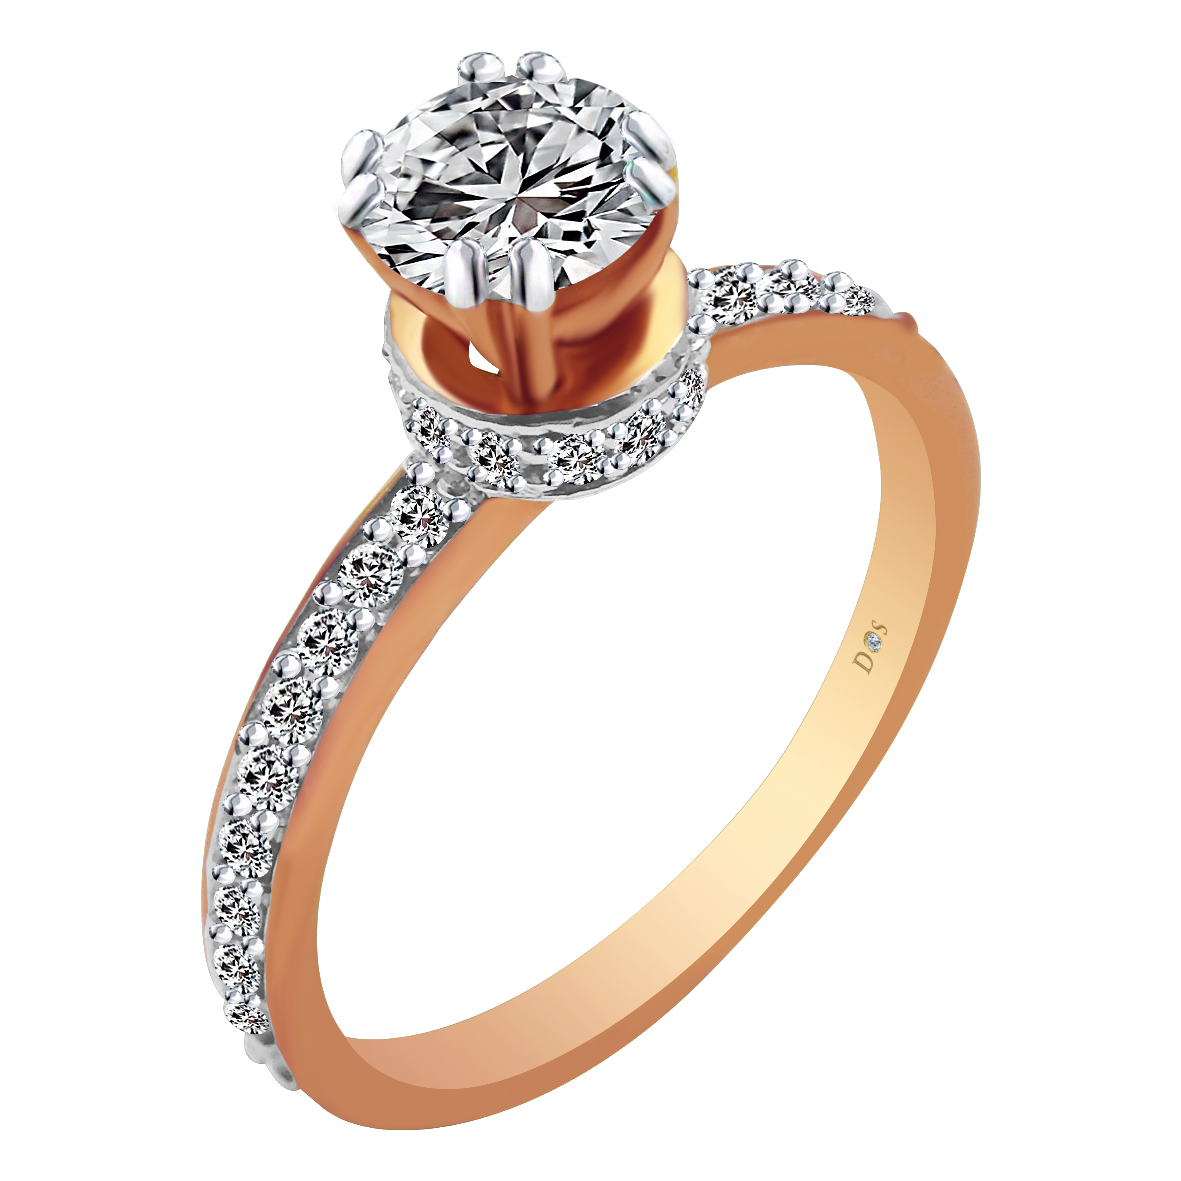 18kt Rose Gold Pave Prong Set Cluster With Solitaire Diamond Crown Ring-8LI31